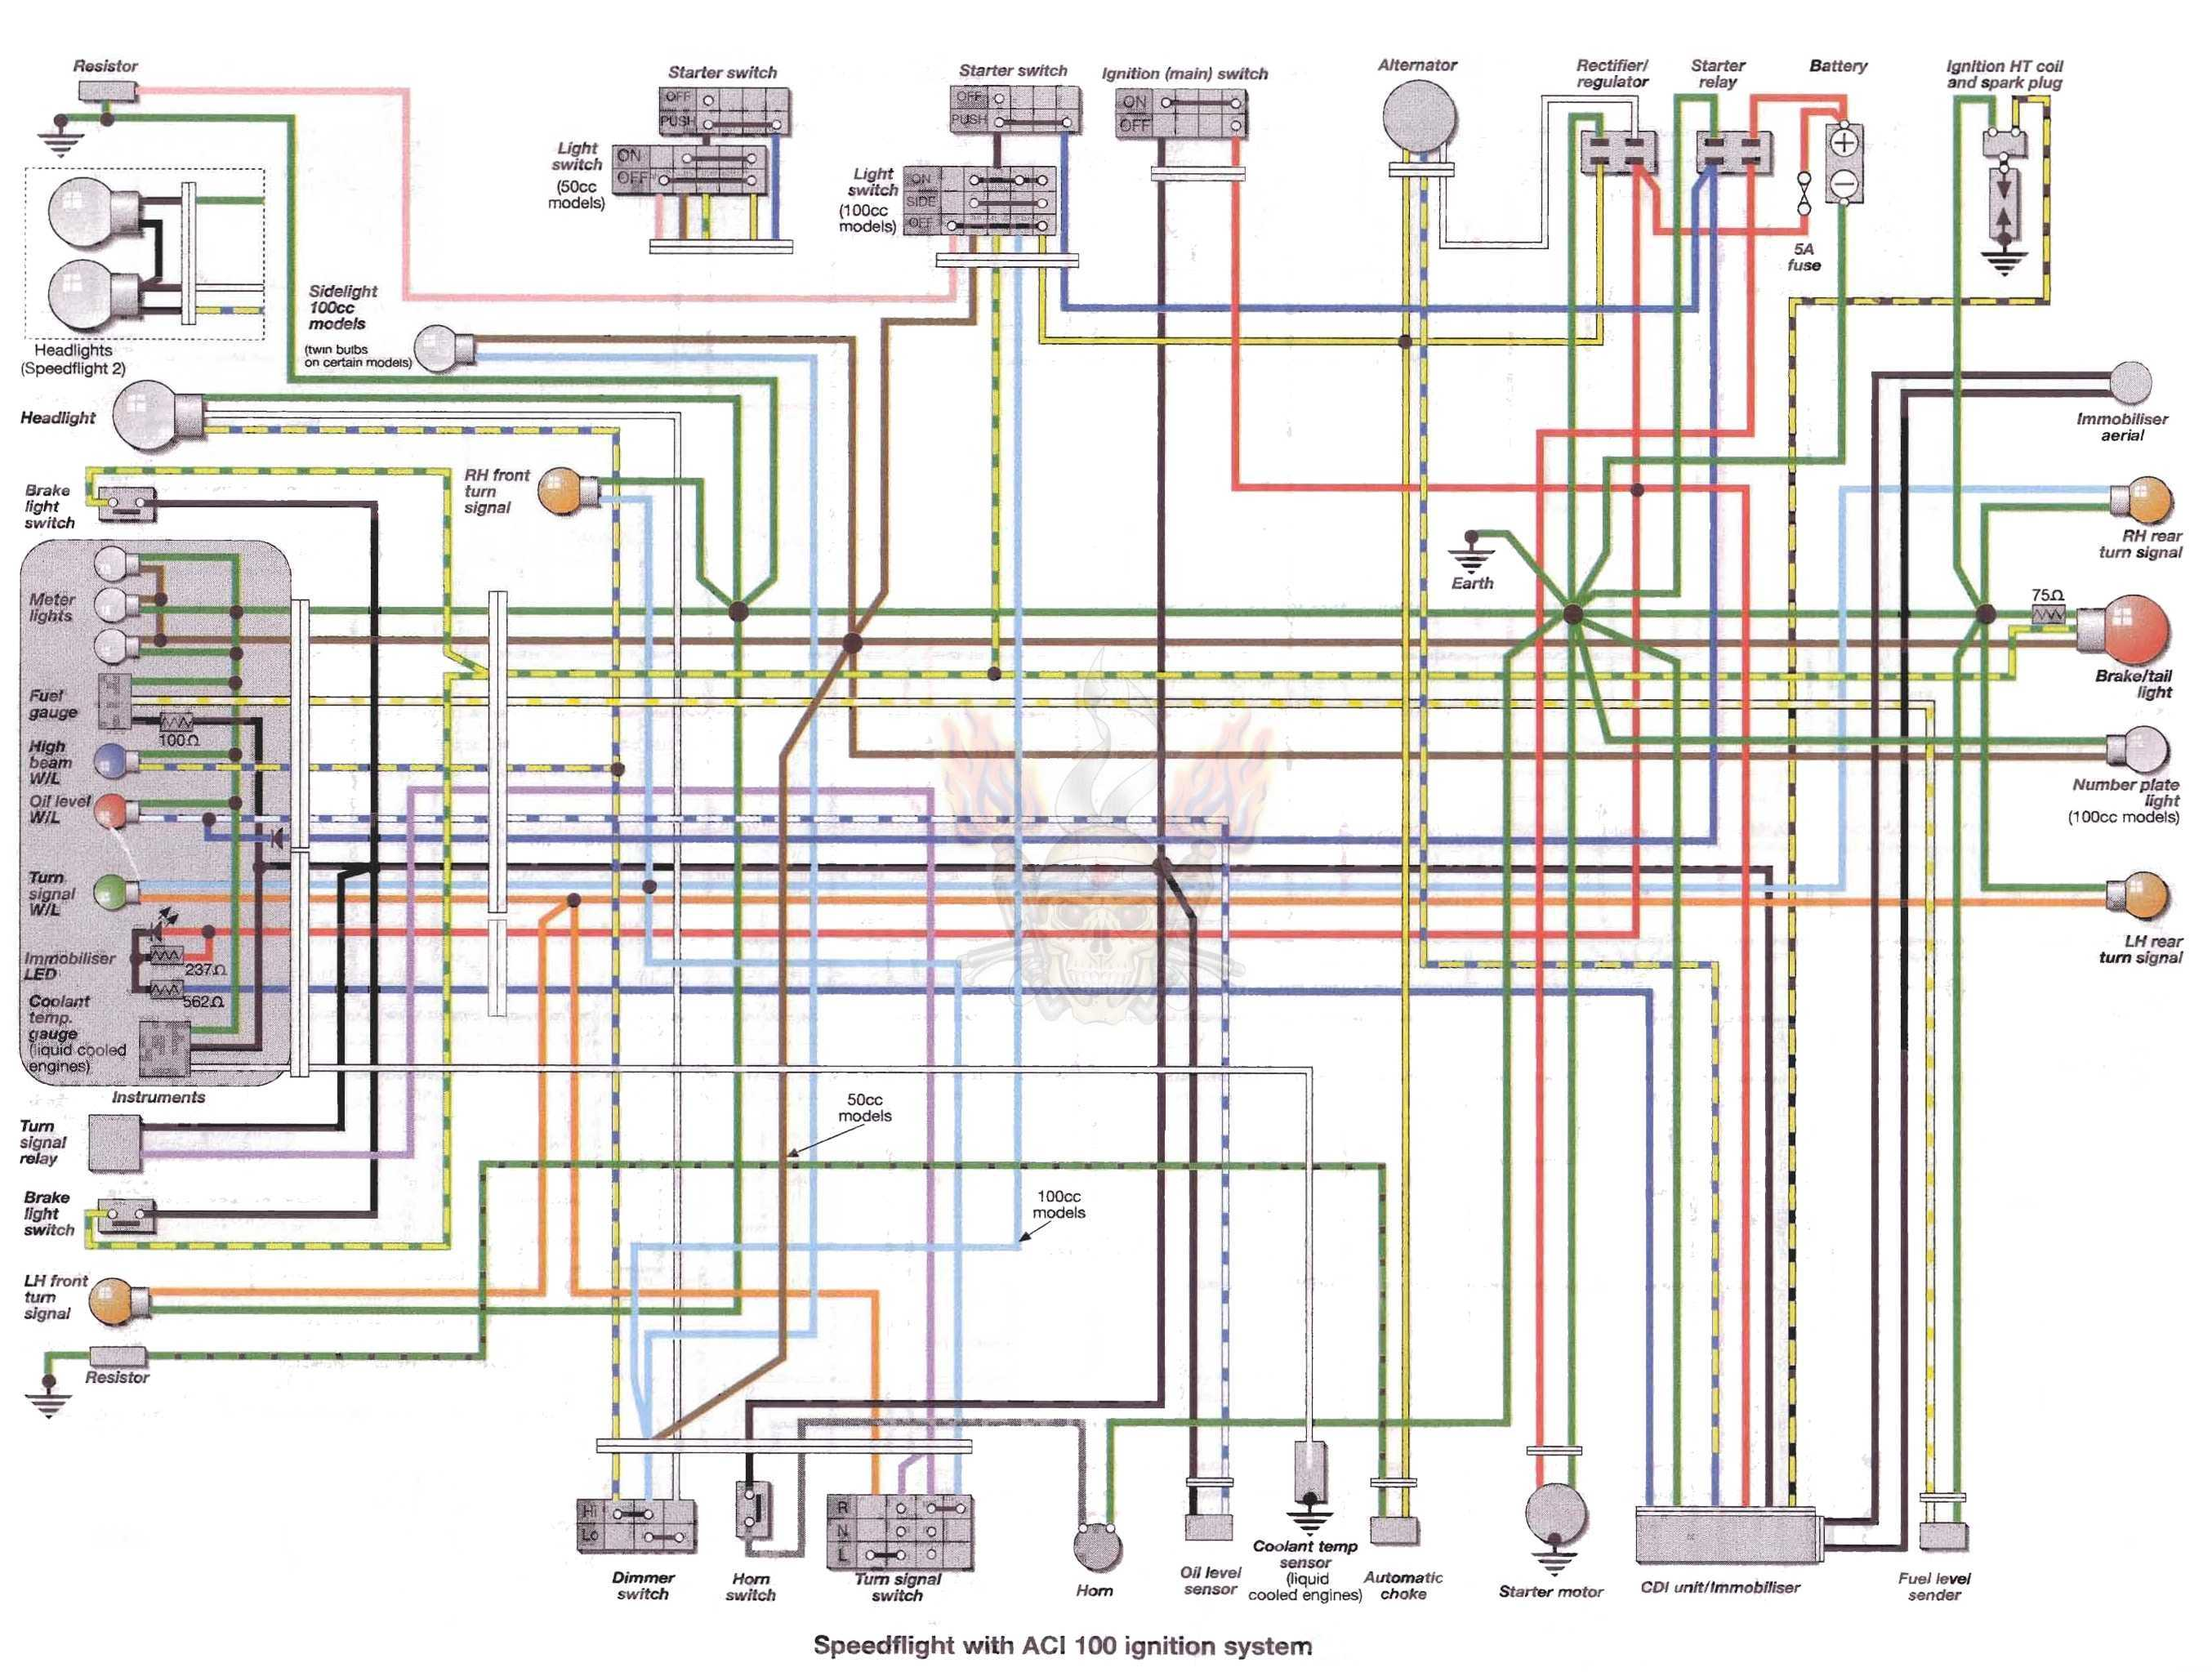 Peugeot Vivacity 100 Wiring Diagram - Schematic Diagram Database on triumph thunderbird 900 wiring diagram, kawasaki vulcan 500 wiring diagram, kawasaki vulcan chopper, kawasaki vulcan ignition wiring diagram, h4 halogen headlight wiring diagram, honda shadow aero wiring diagram, dpdt switch wiring diagram, kawasaki vulcan classic, kawasaki vulcan 800 wiring diagram, kawasaki vulcan motorcycles, kawasaki vulcan accessories, kawasaki vulcan 2000 wiring diagram, kawasaki vulcan cruiser, knob and tube wiring diagram, ibanez pickup wiring diagram, kawasaki vulcan 1500 wiring diagram, kawasaki vulcan handlebars, kawasaki vulcan 750 wiring diagram, yamaha v star 650 wiring diagram, water temperature gauge wiring diagram,